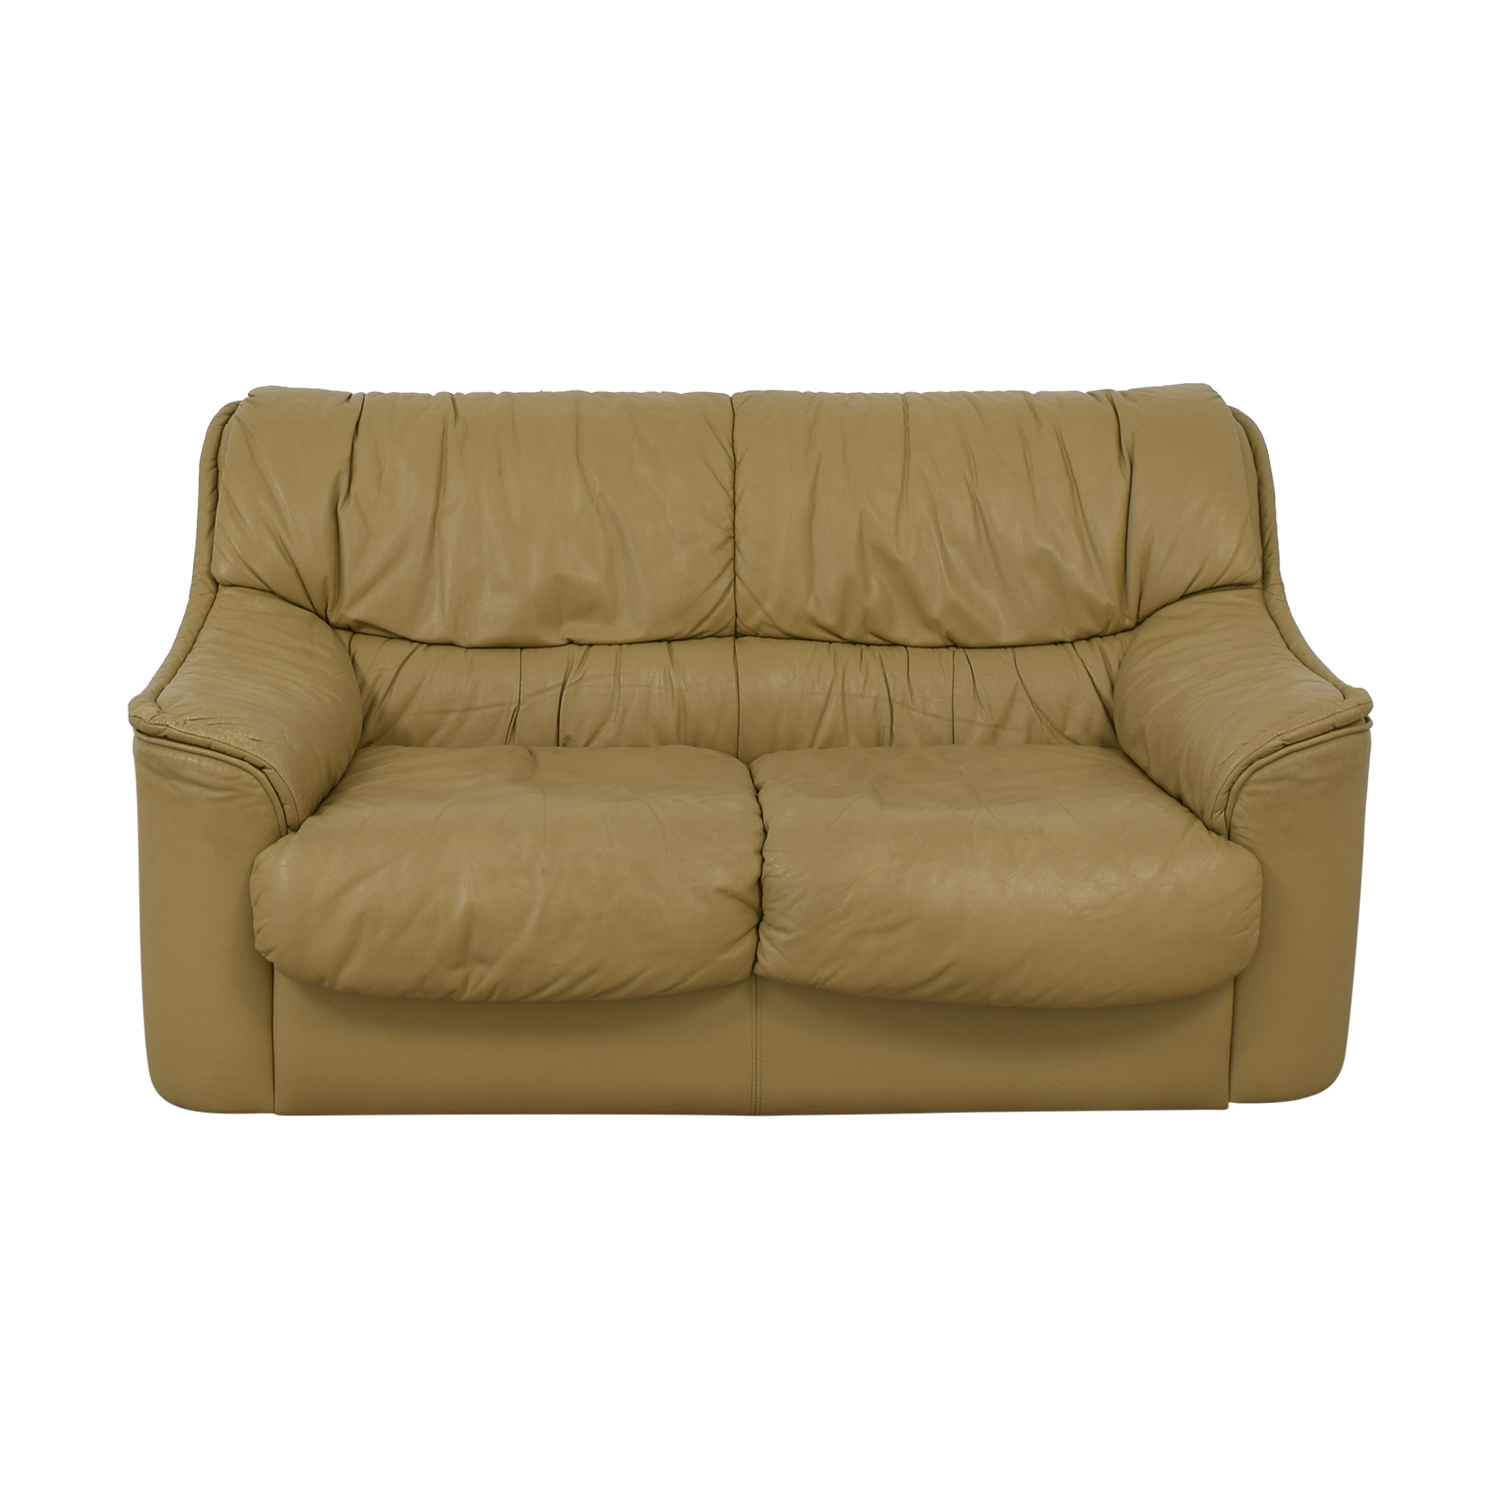 Taupe Two-Cushion Sofa dimensions